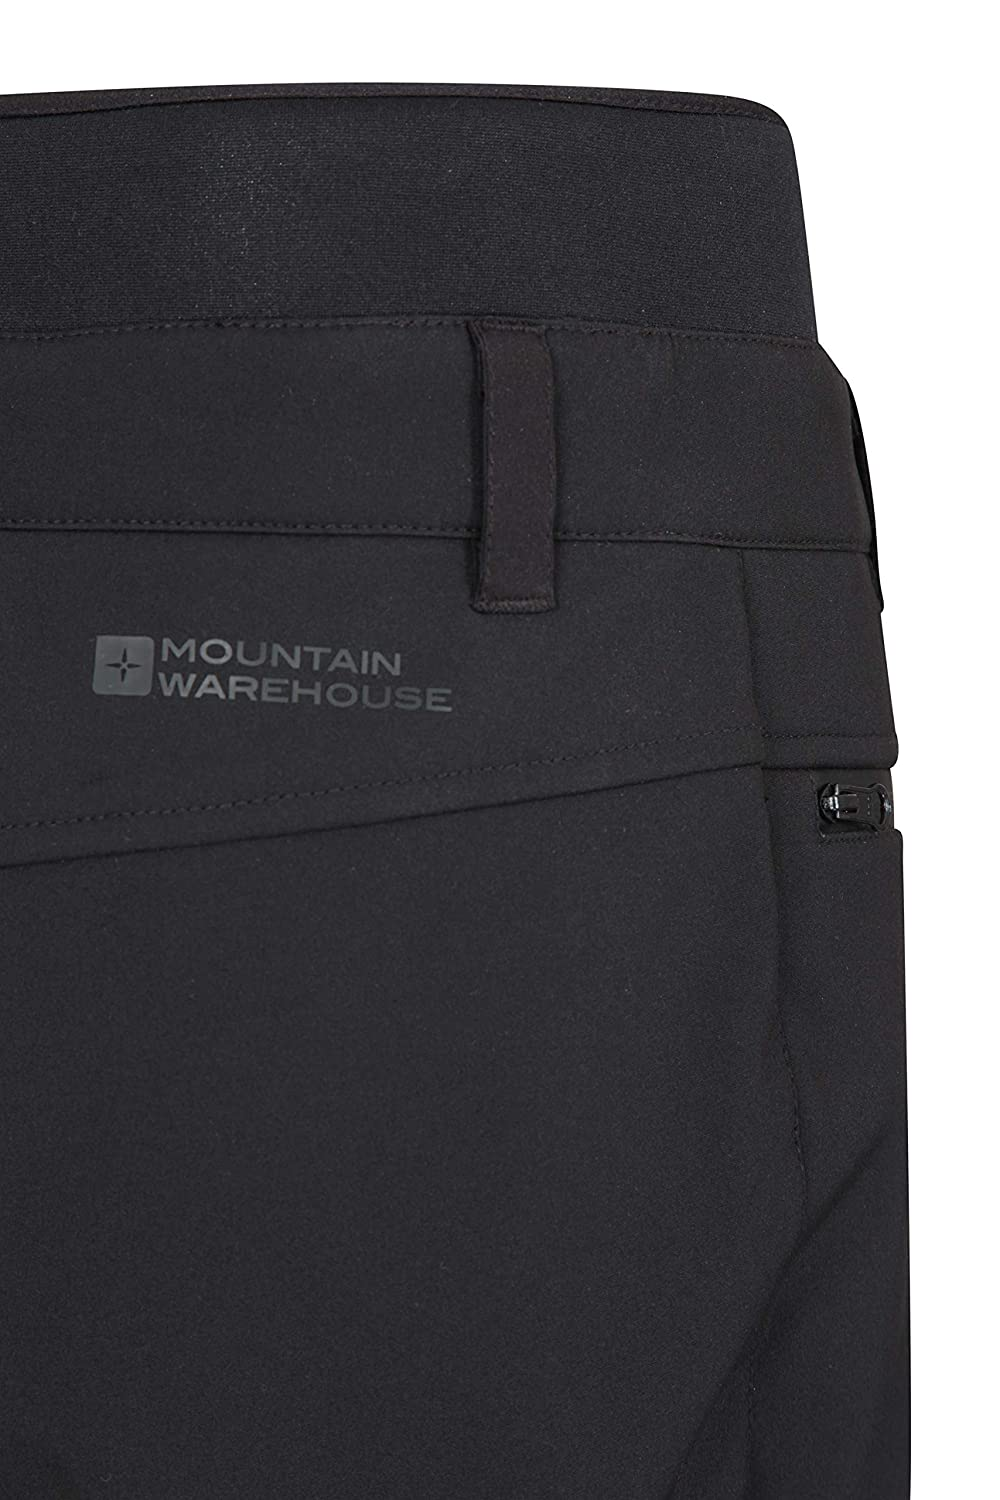 Mountain Warehouse Avalanche Womens High-Waisted Ski Pants Slim Fit